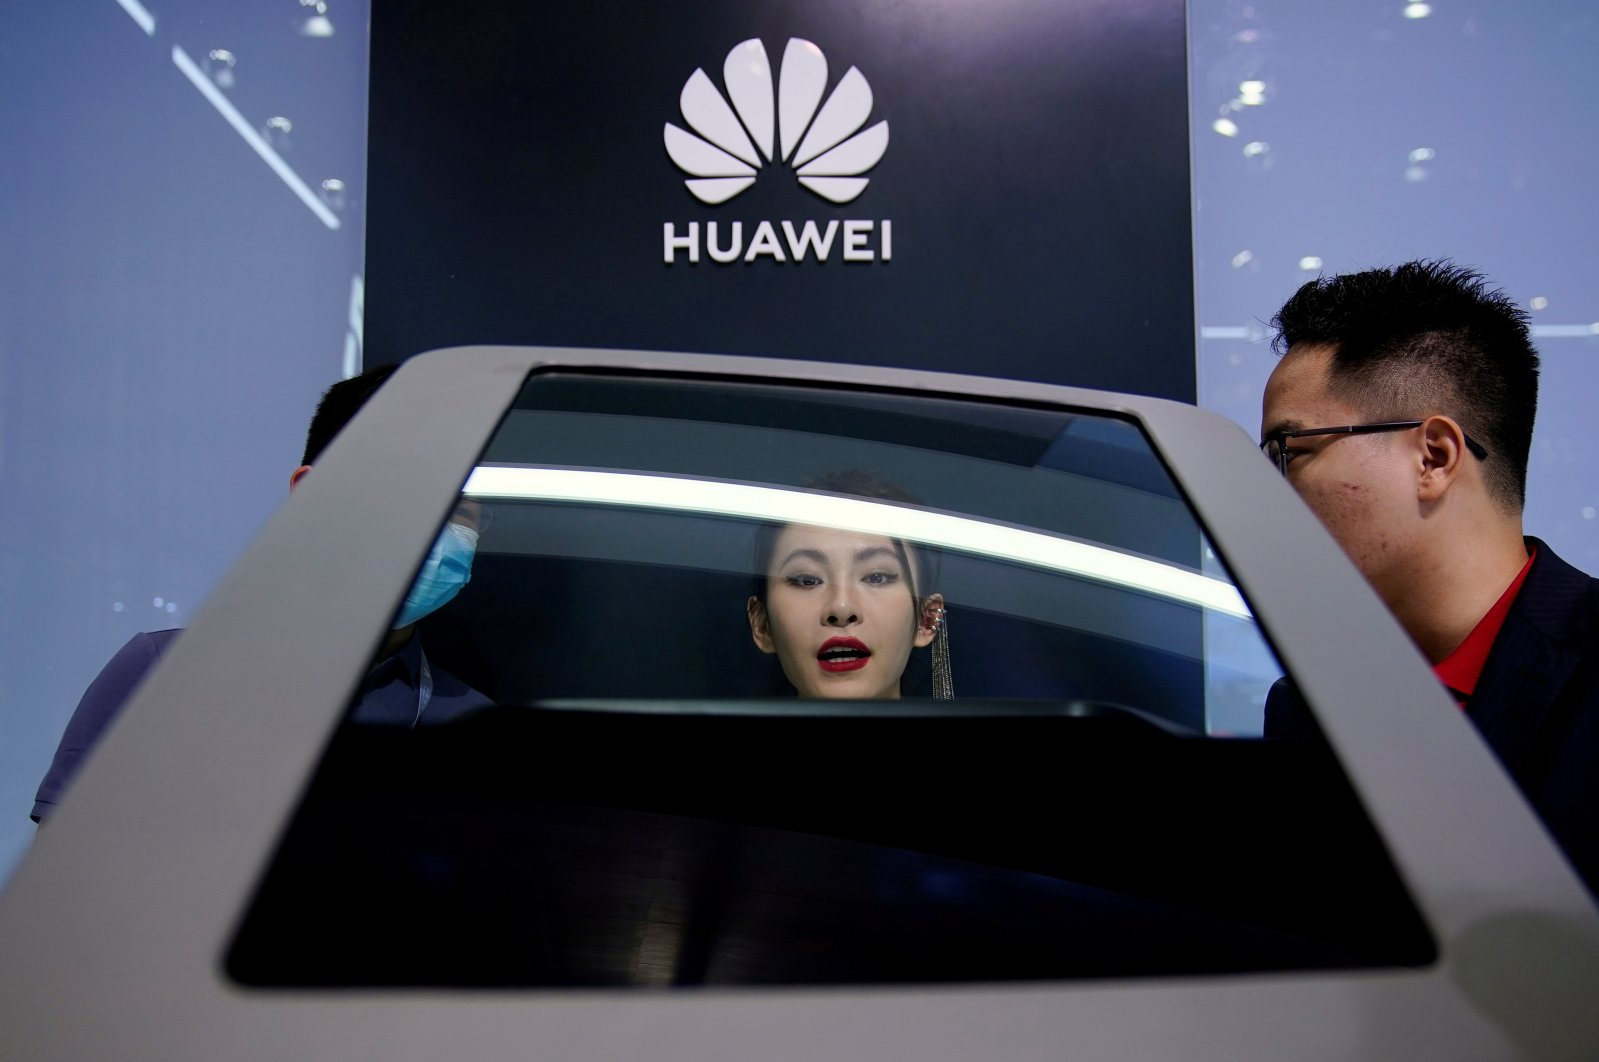 People look at a display near a Huawei logo during a media day for the Auto Shanghai show, Shanghai, China, April 19, 2021. (Reuters Photo)